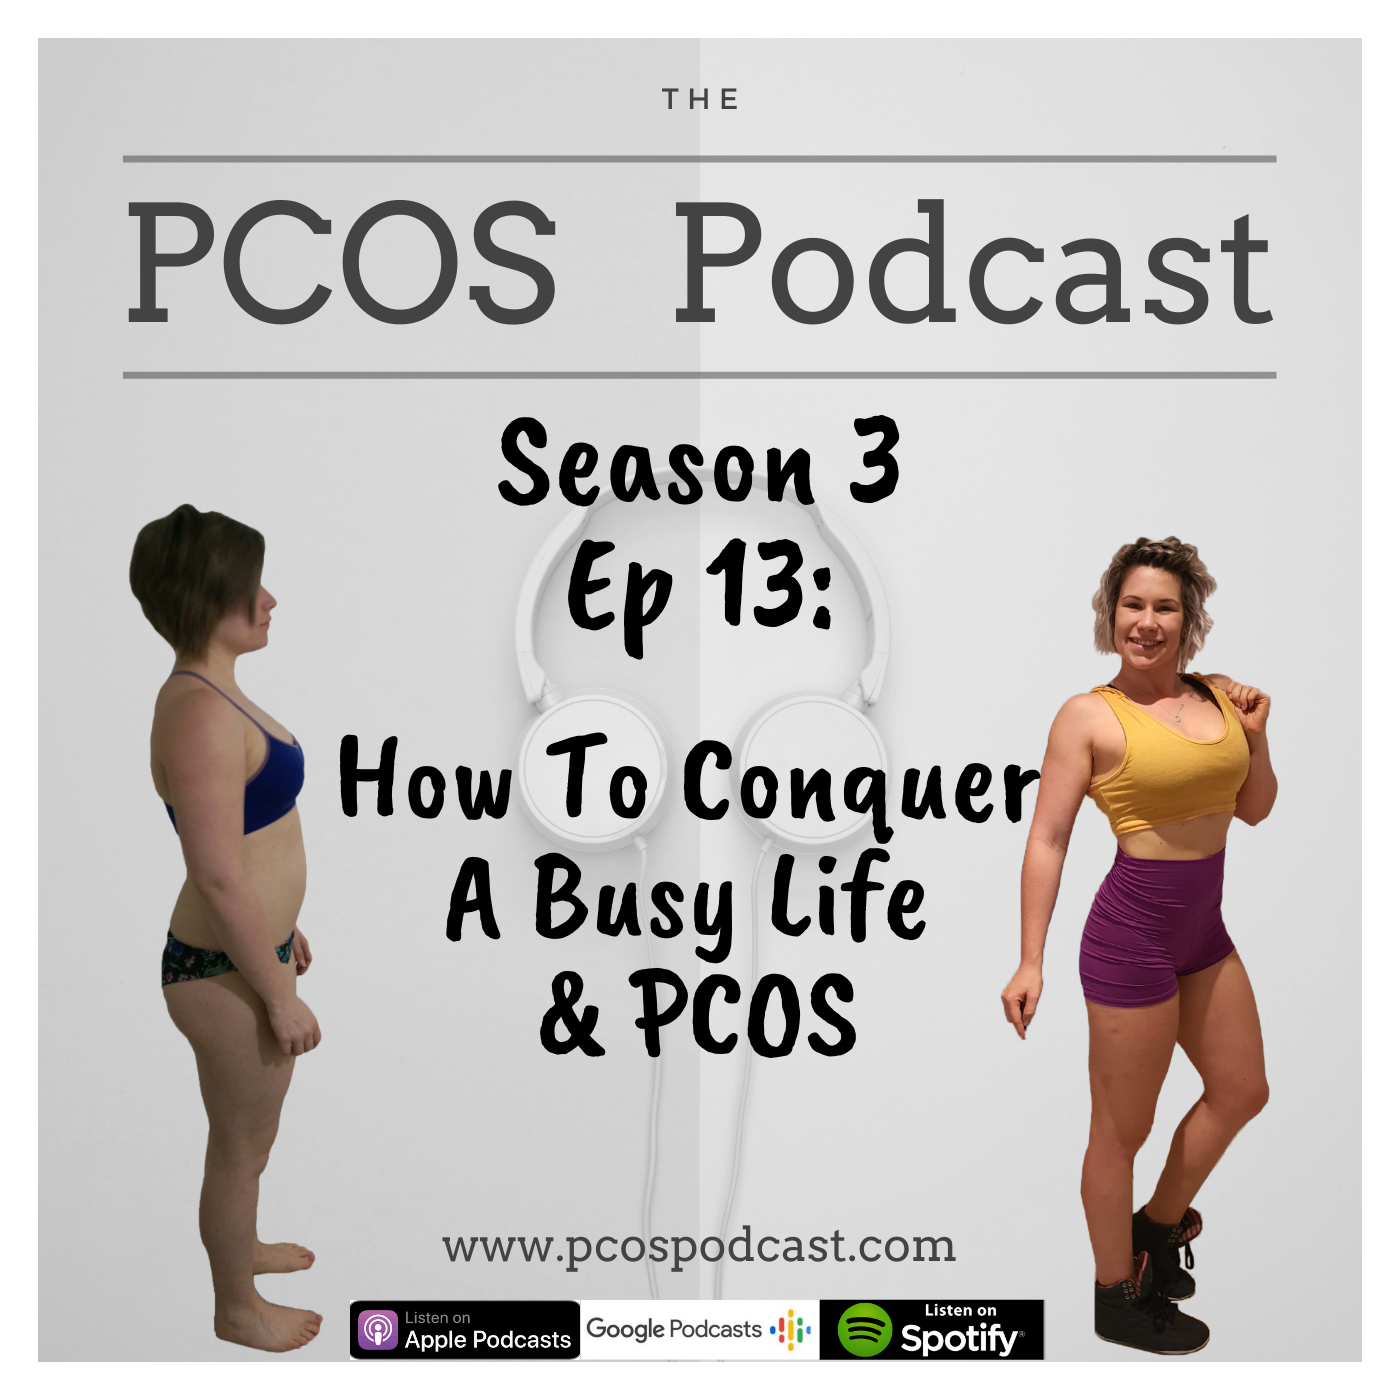 S3 E13 HowToConquerABusyLife&PCOS